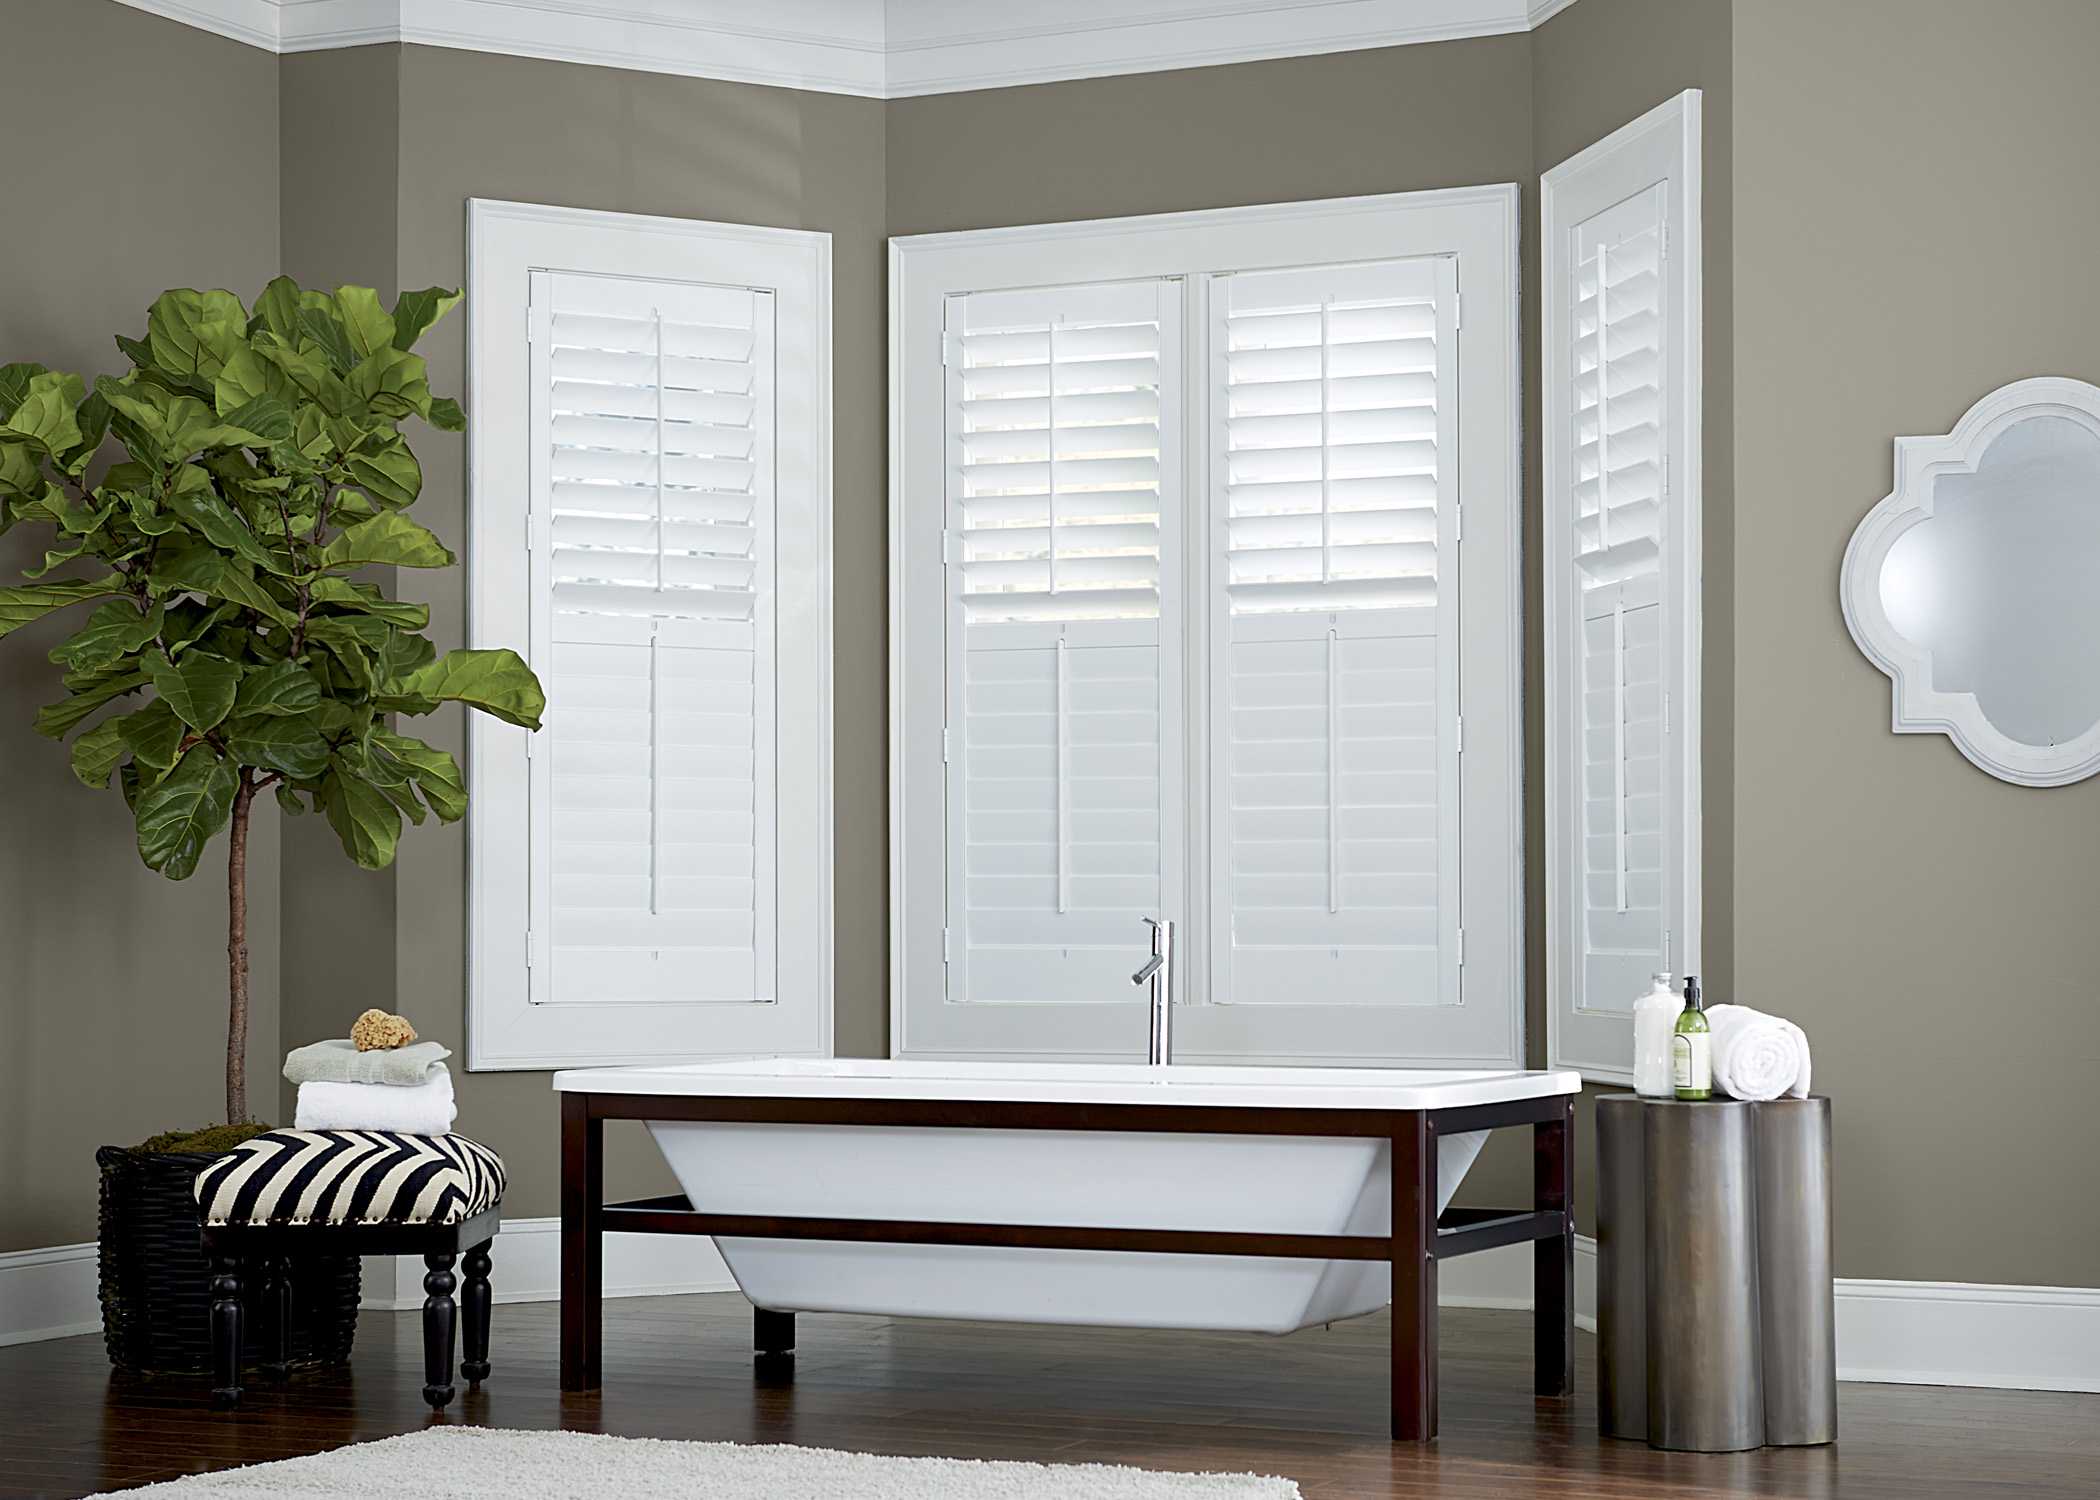 Composite Shutters in Bathroom